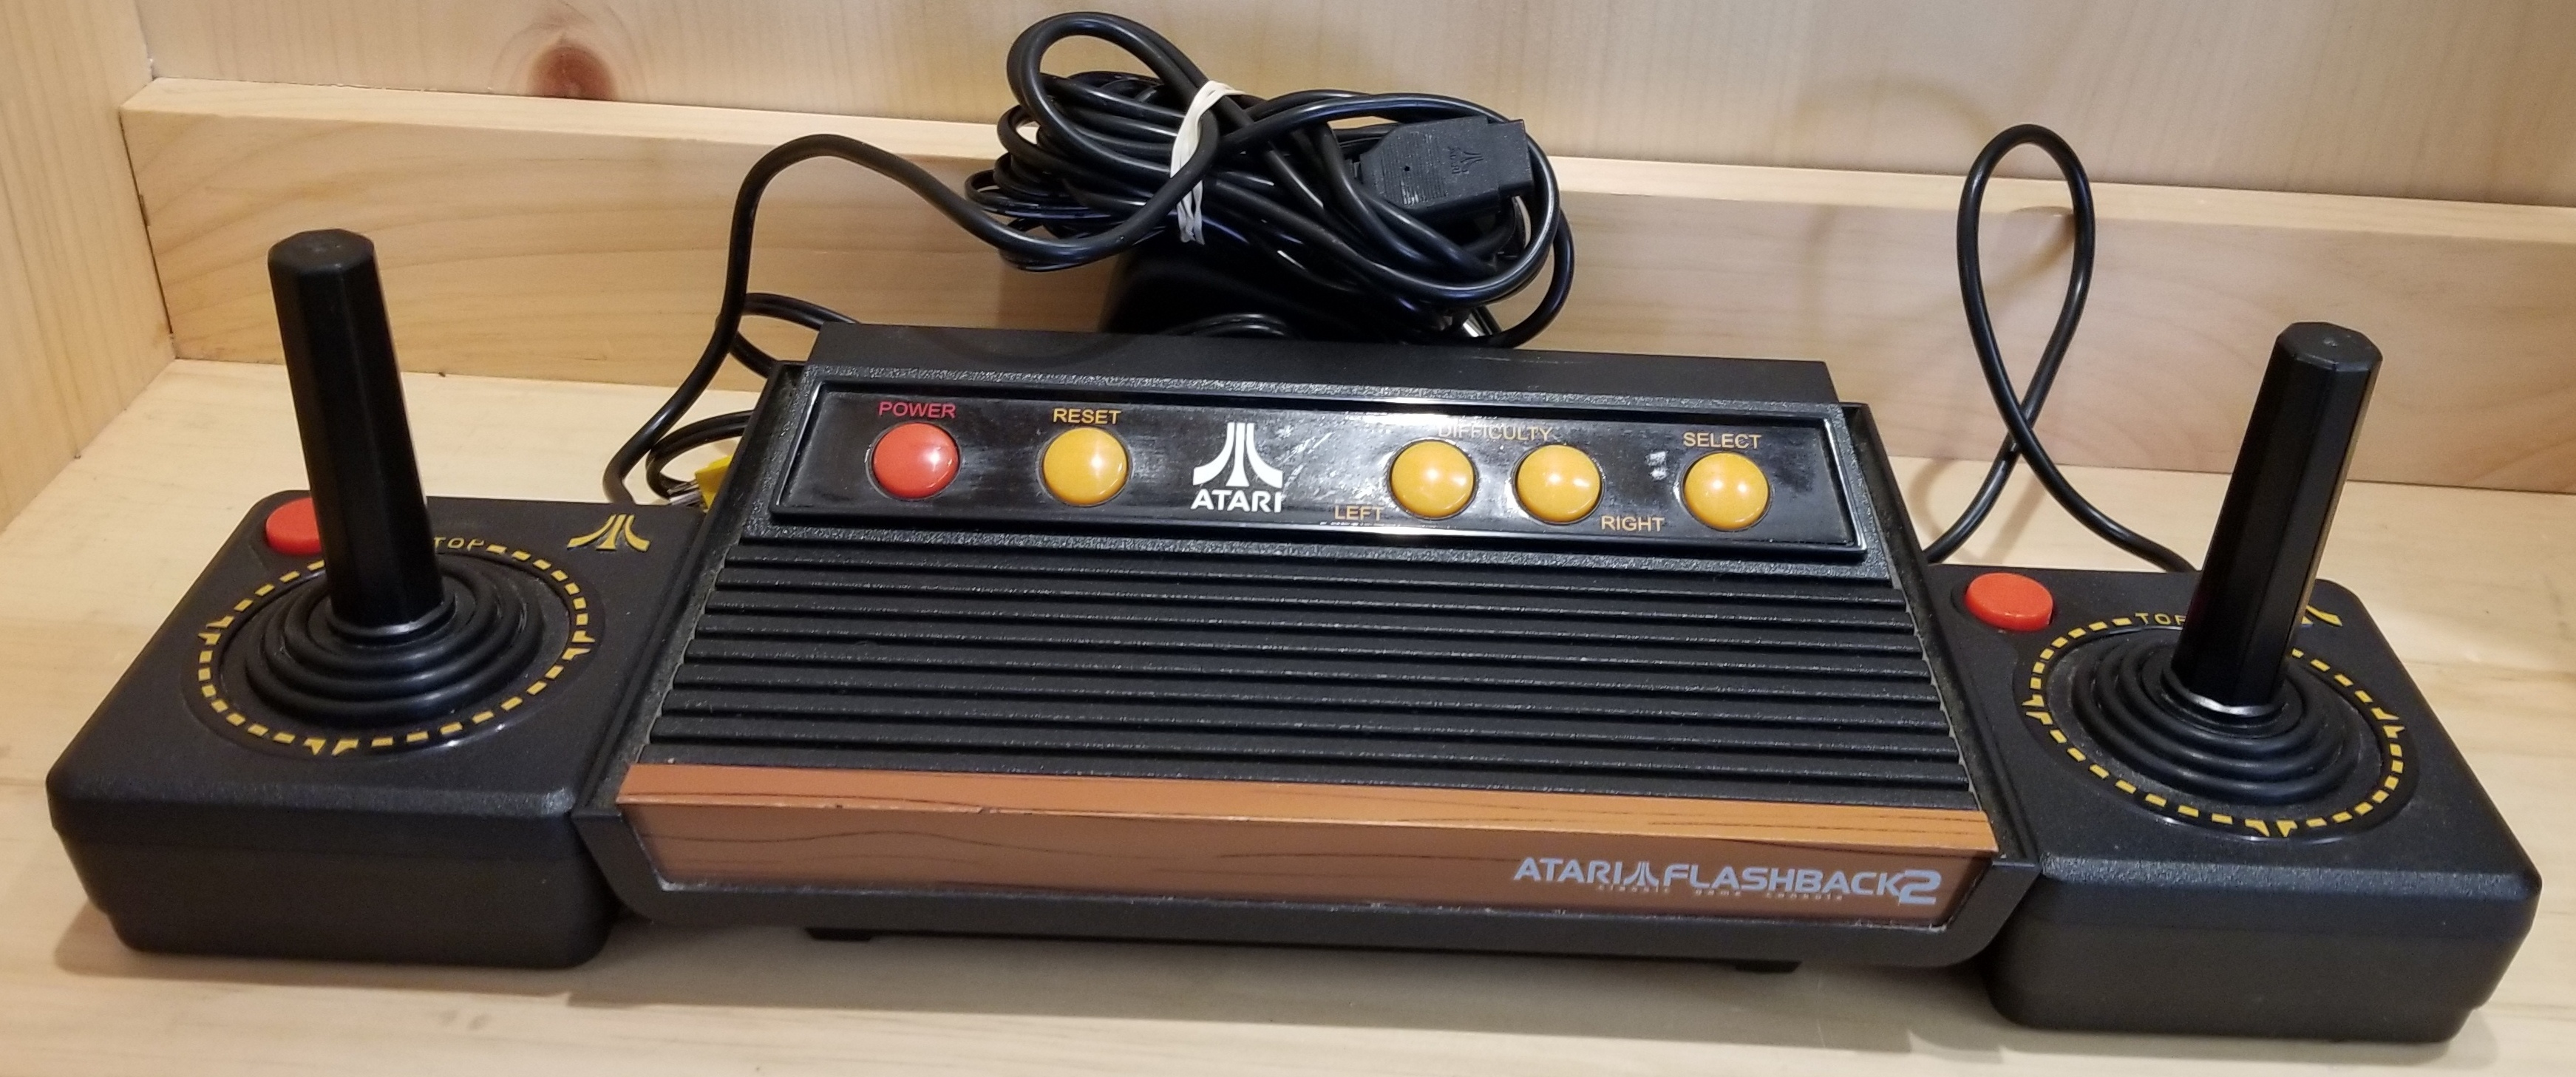 ATARI - FLASHBACK 2 - ATARI GAME SYSTEMS